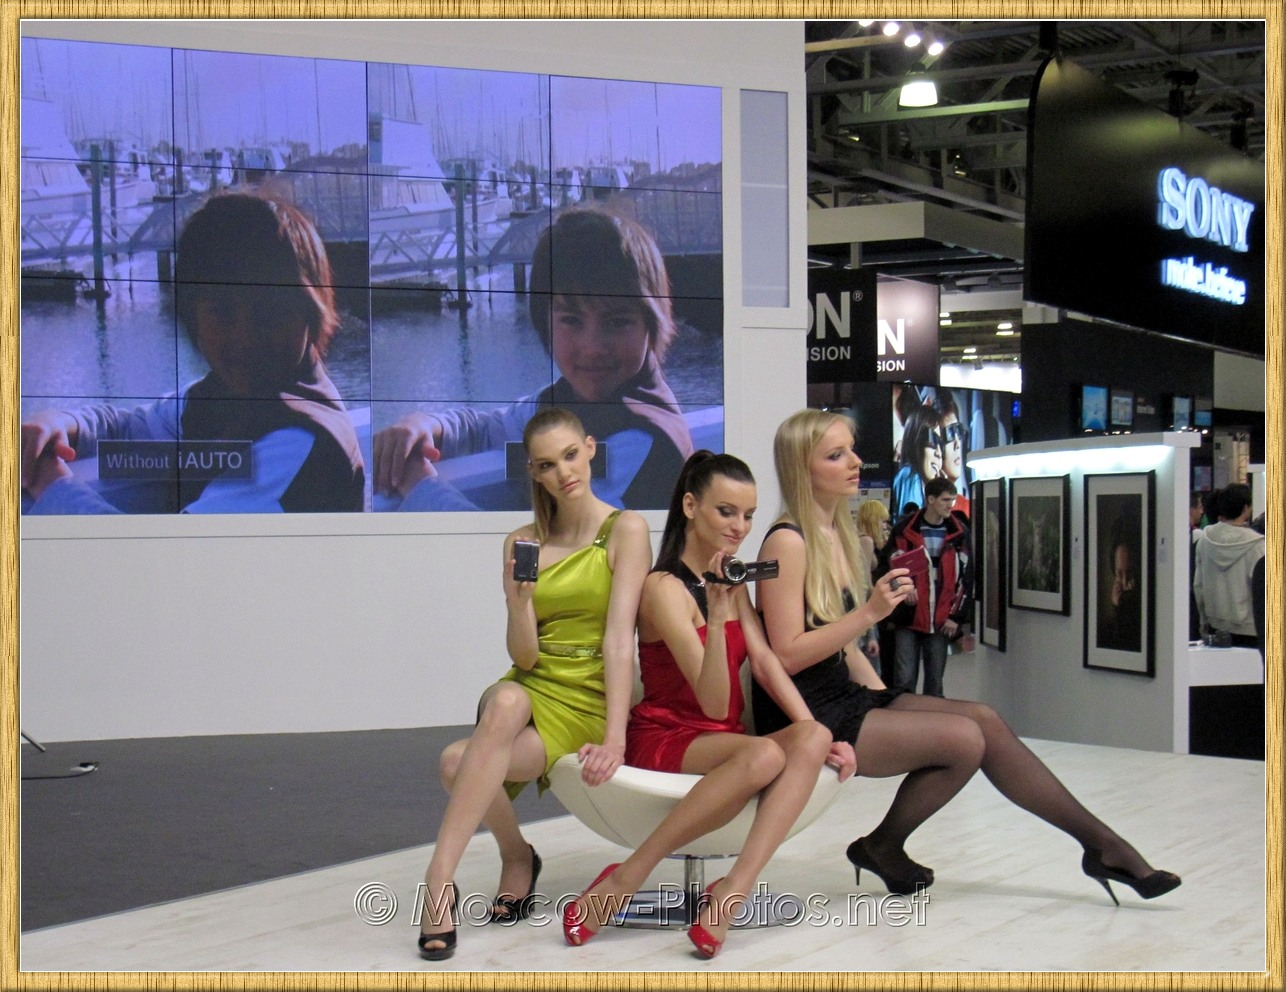 Sony beautiful girls at Photoforum